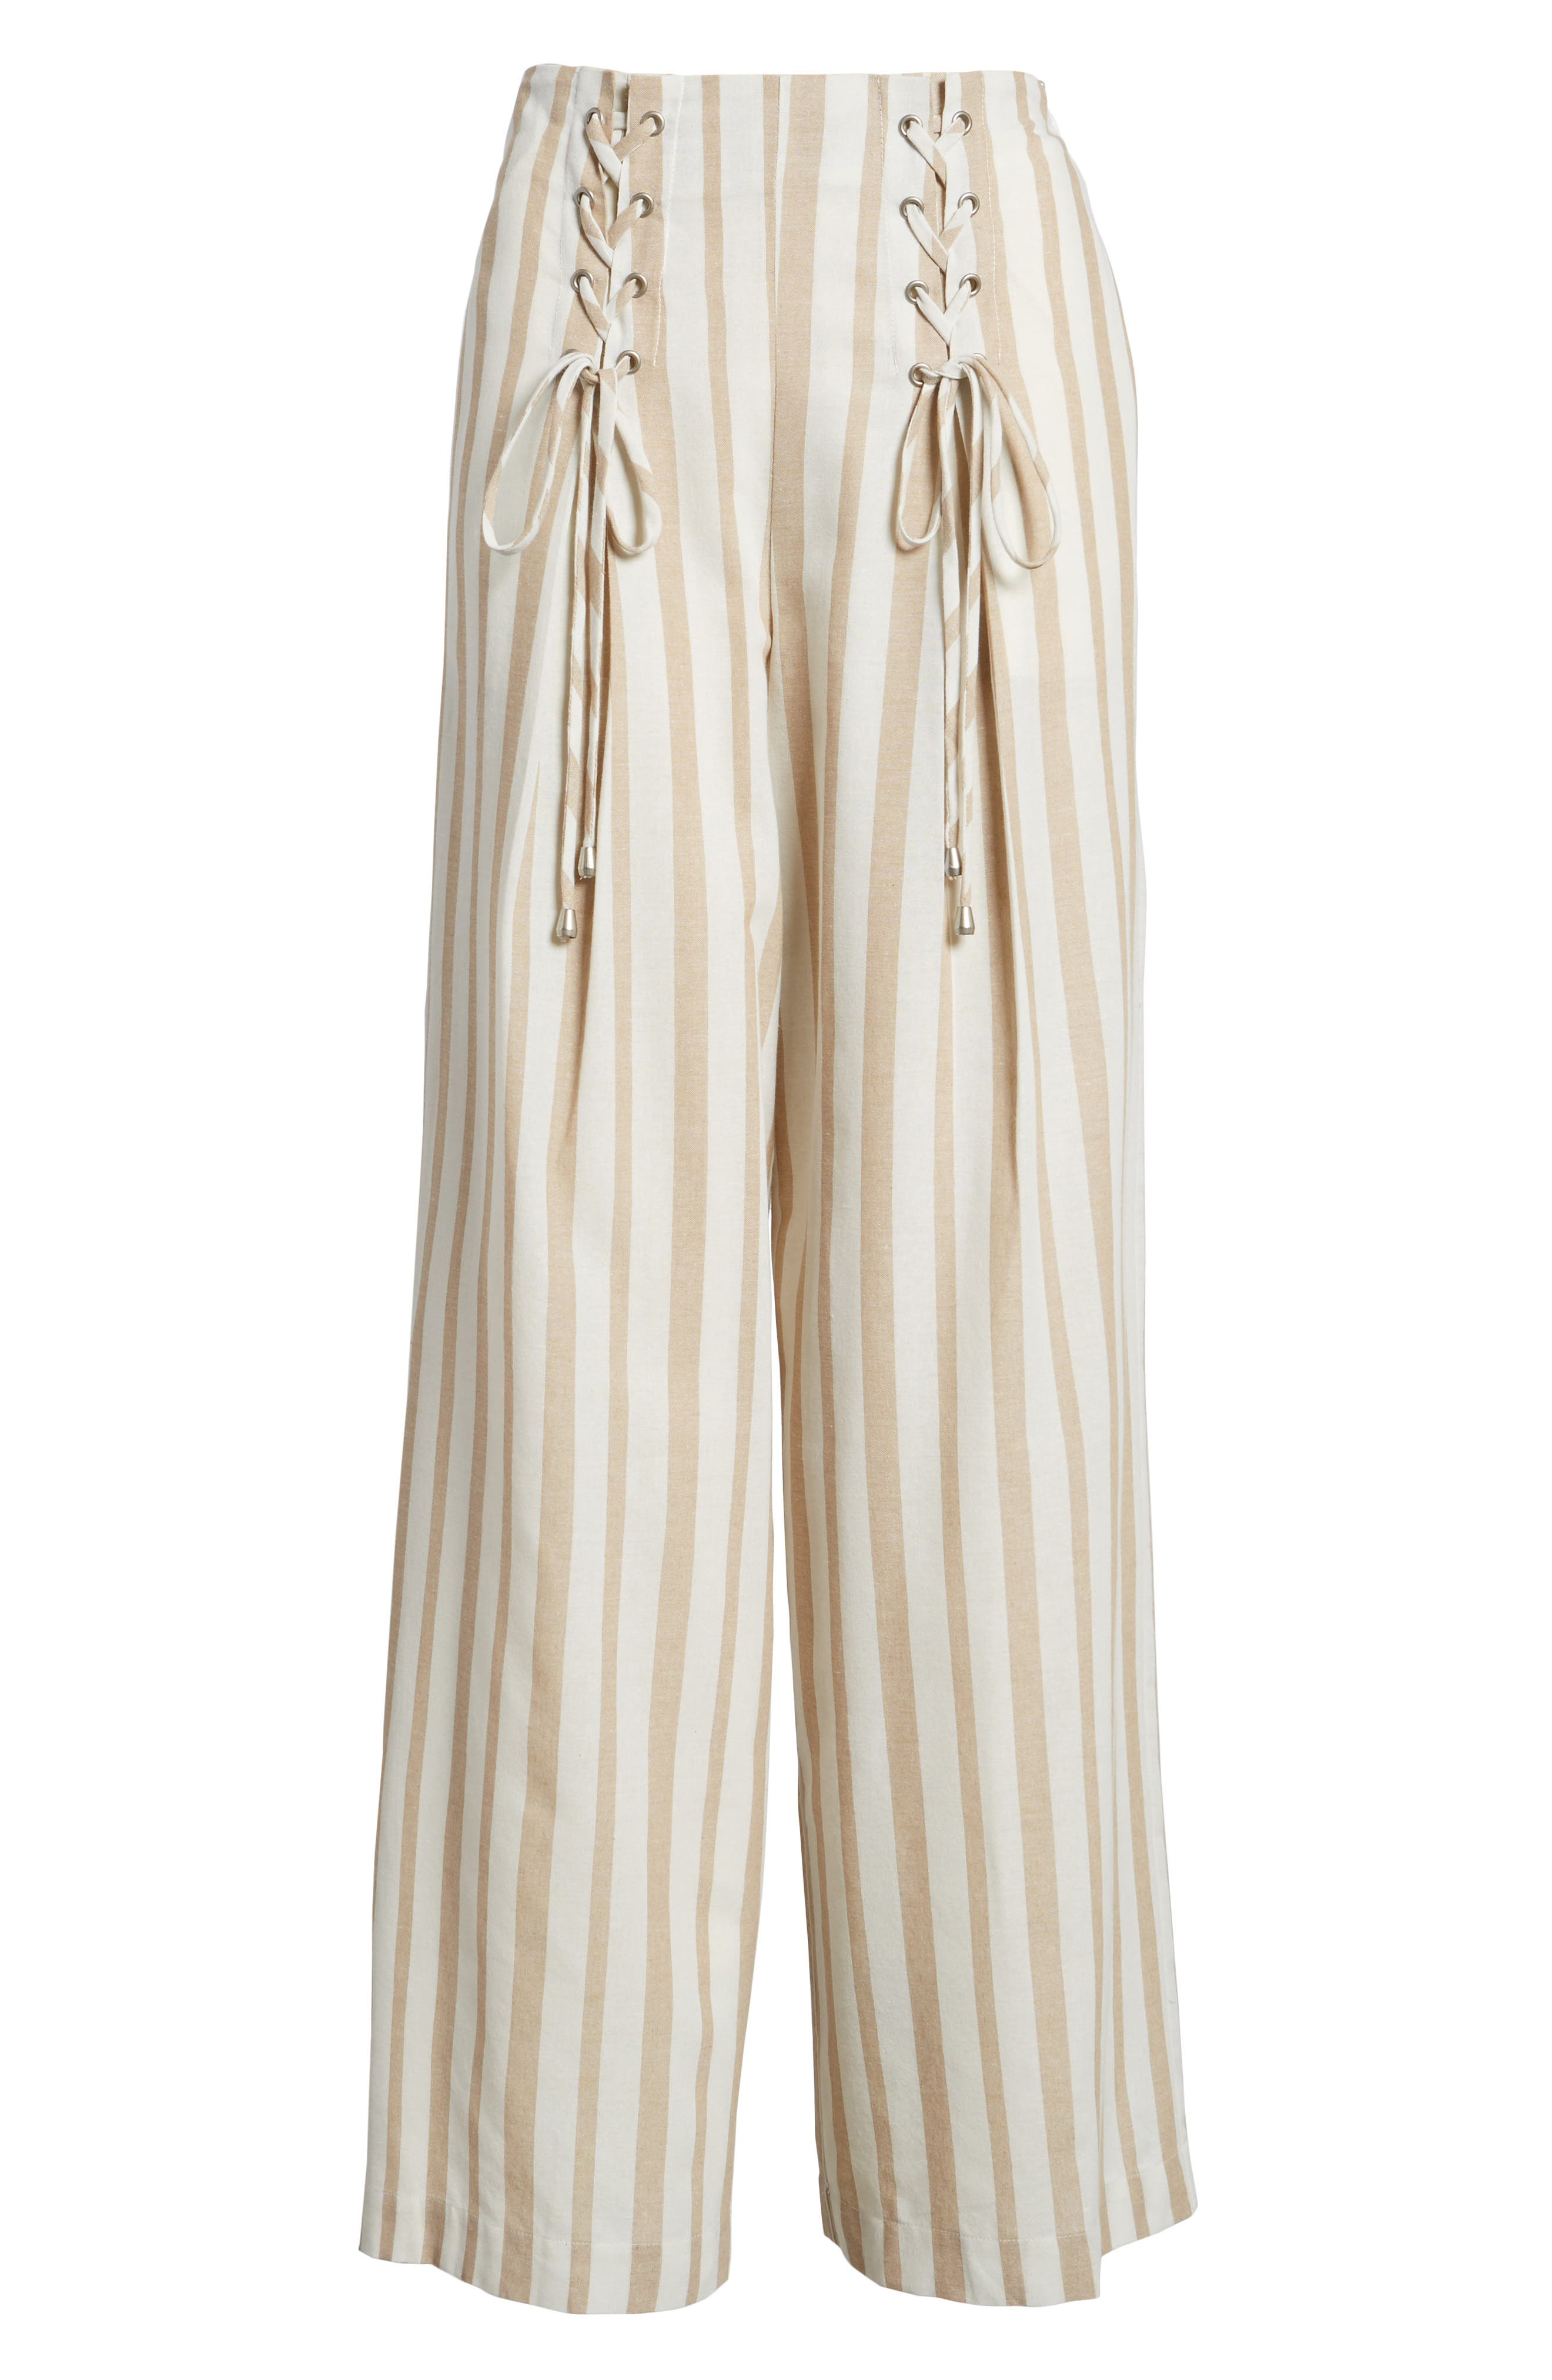 Chriselle x J.O.A. Lace-Up High Waist Wide Leg Pants,                             Alternate thumbnail 6, color,                             250